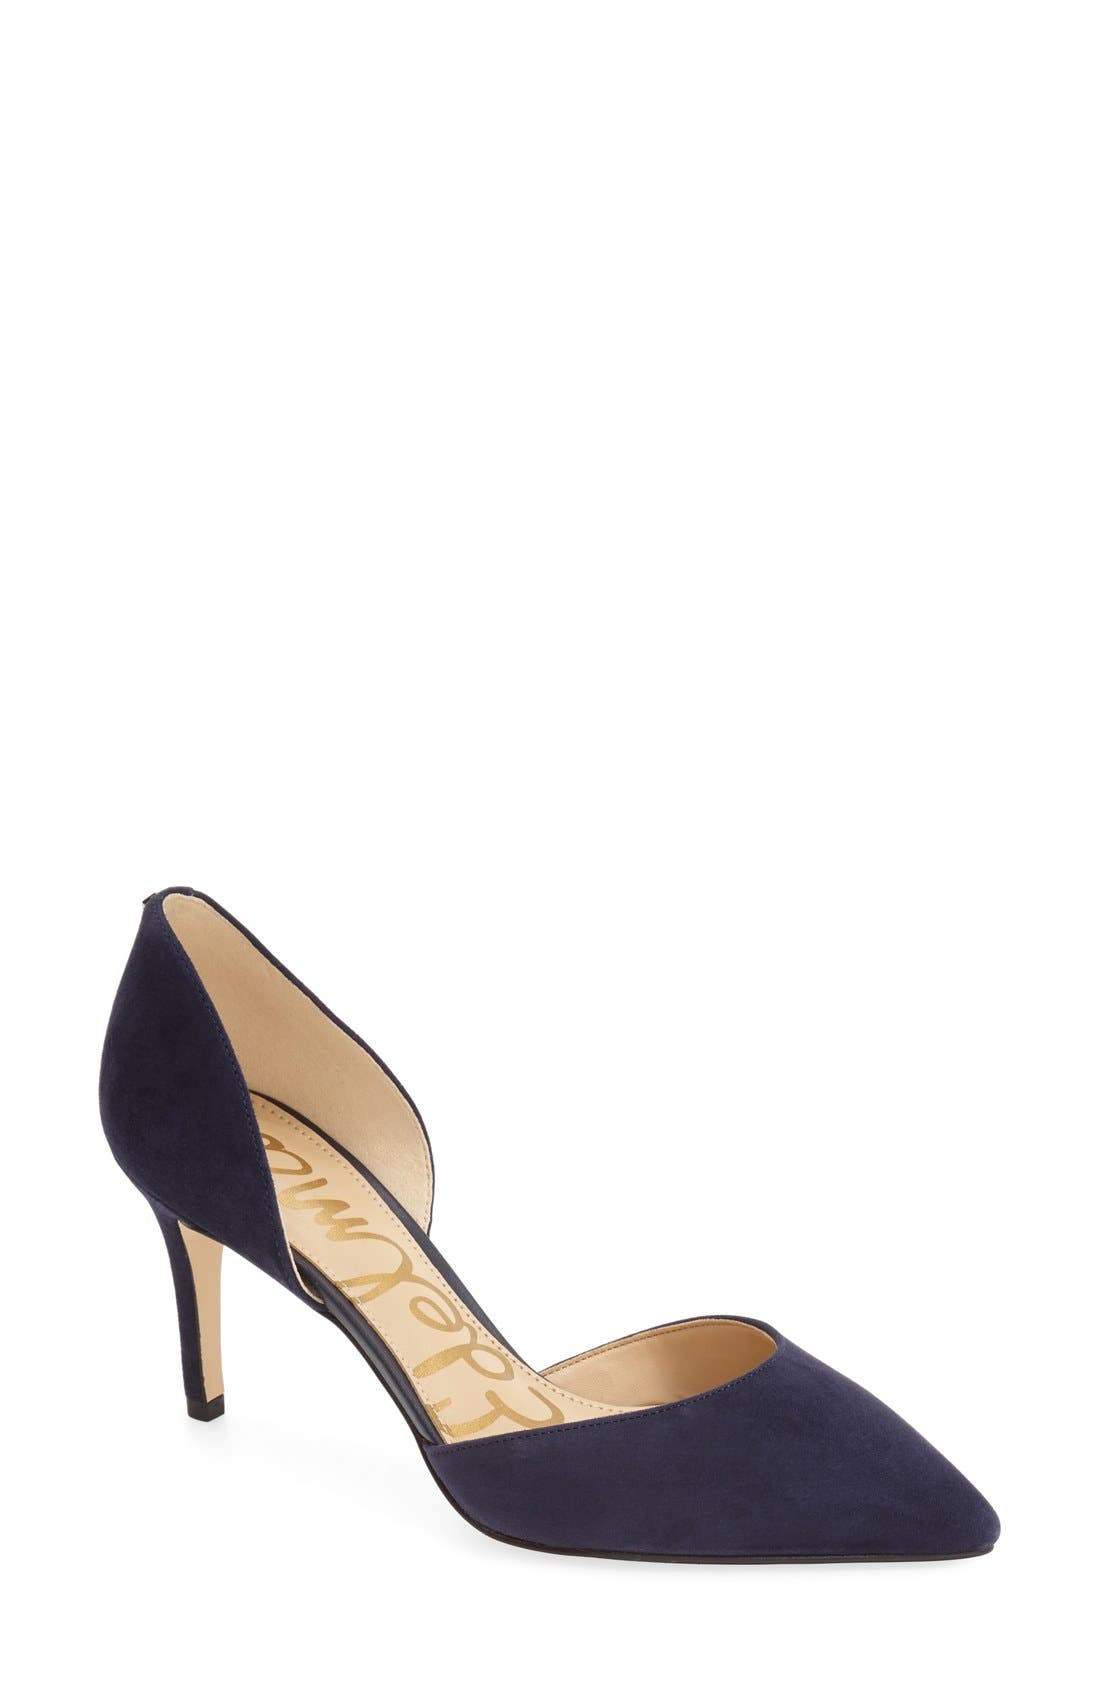 'Telsa' d'Orsay Pointy Toe Pump,                             Main thumbnail 12, color,